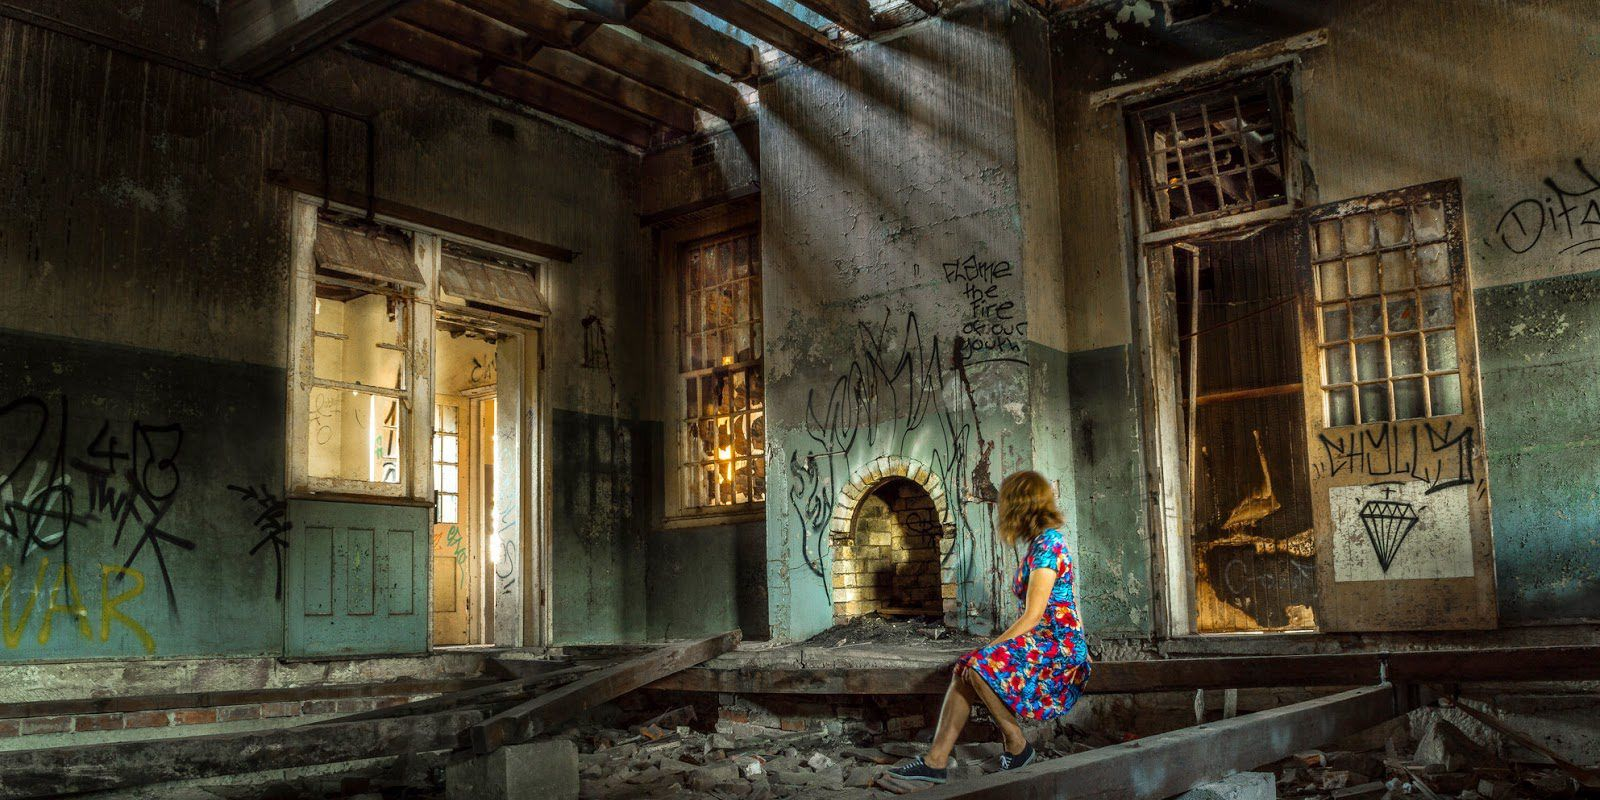 24 Pictures Of Vacant Mental Hospitals Around The World That No One Should Ever Visit